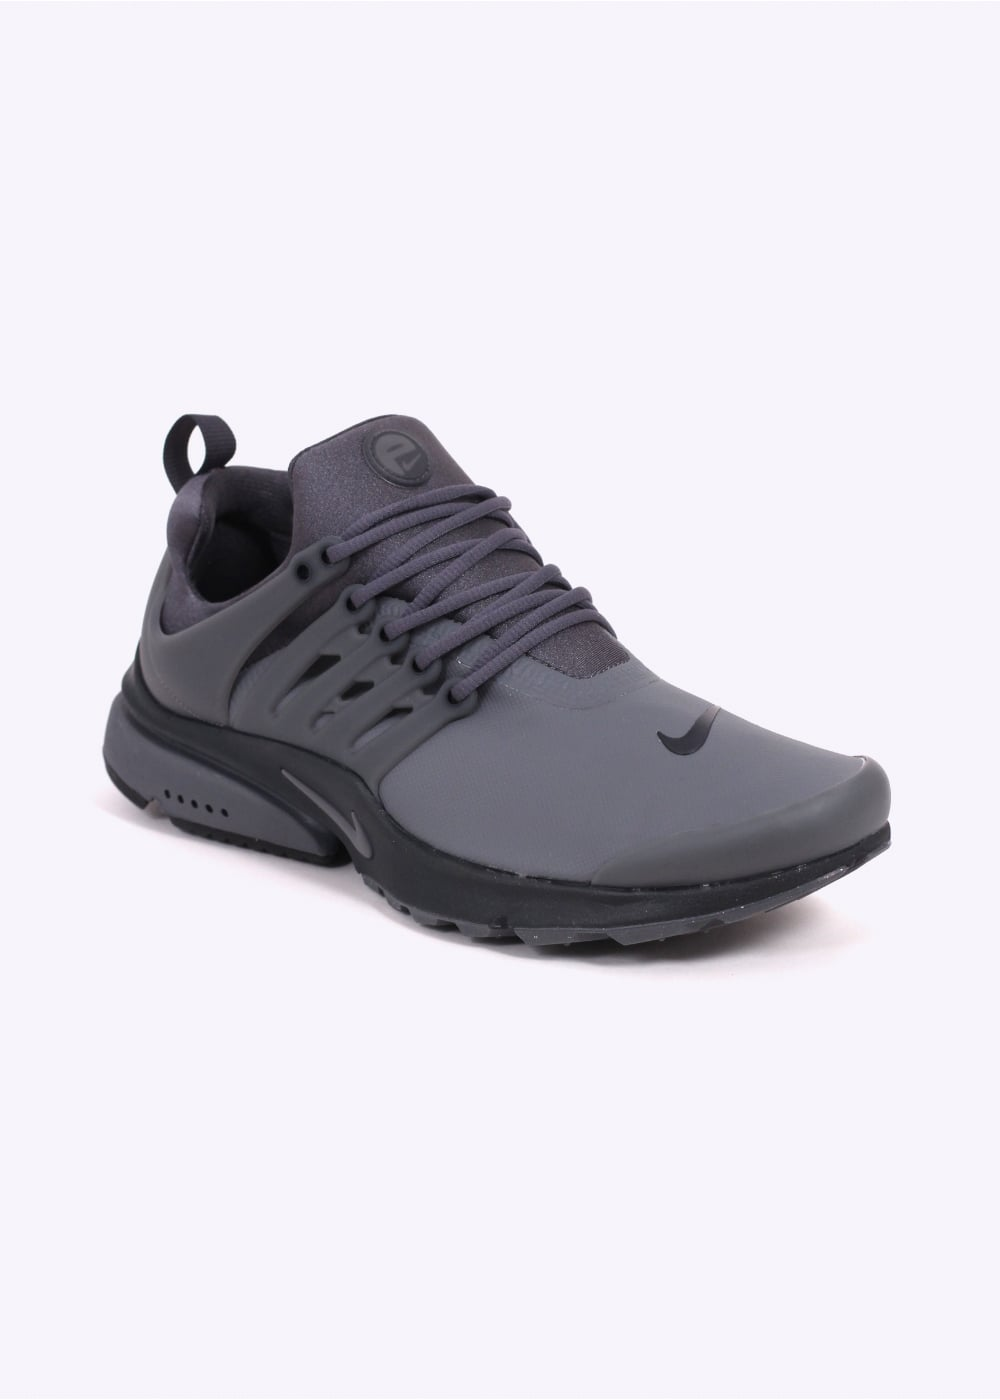 nike footwear air presto low utility dark grey nike. Black Bedroom Furniture Sets. Home Design Ideas